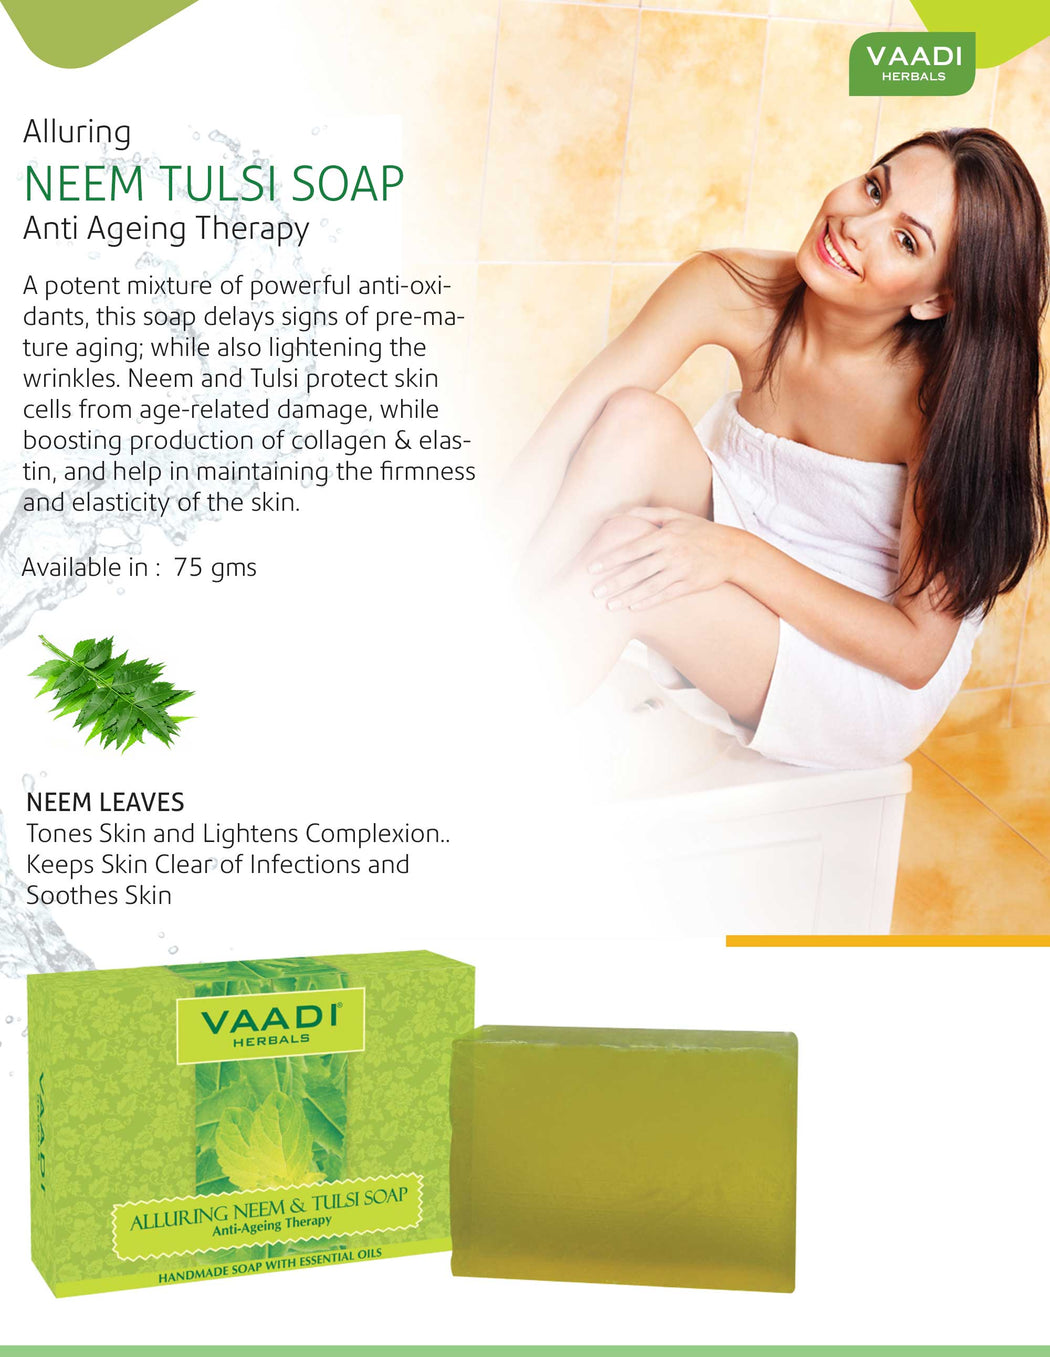 Pack of 3 Alluring Neem-Tulsi Soap with Vitamin E & Tea Tree Oil (75 gms x 3)